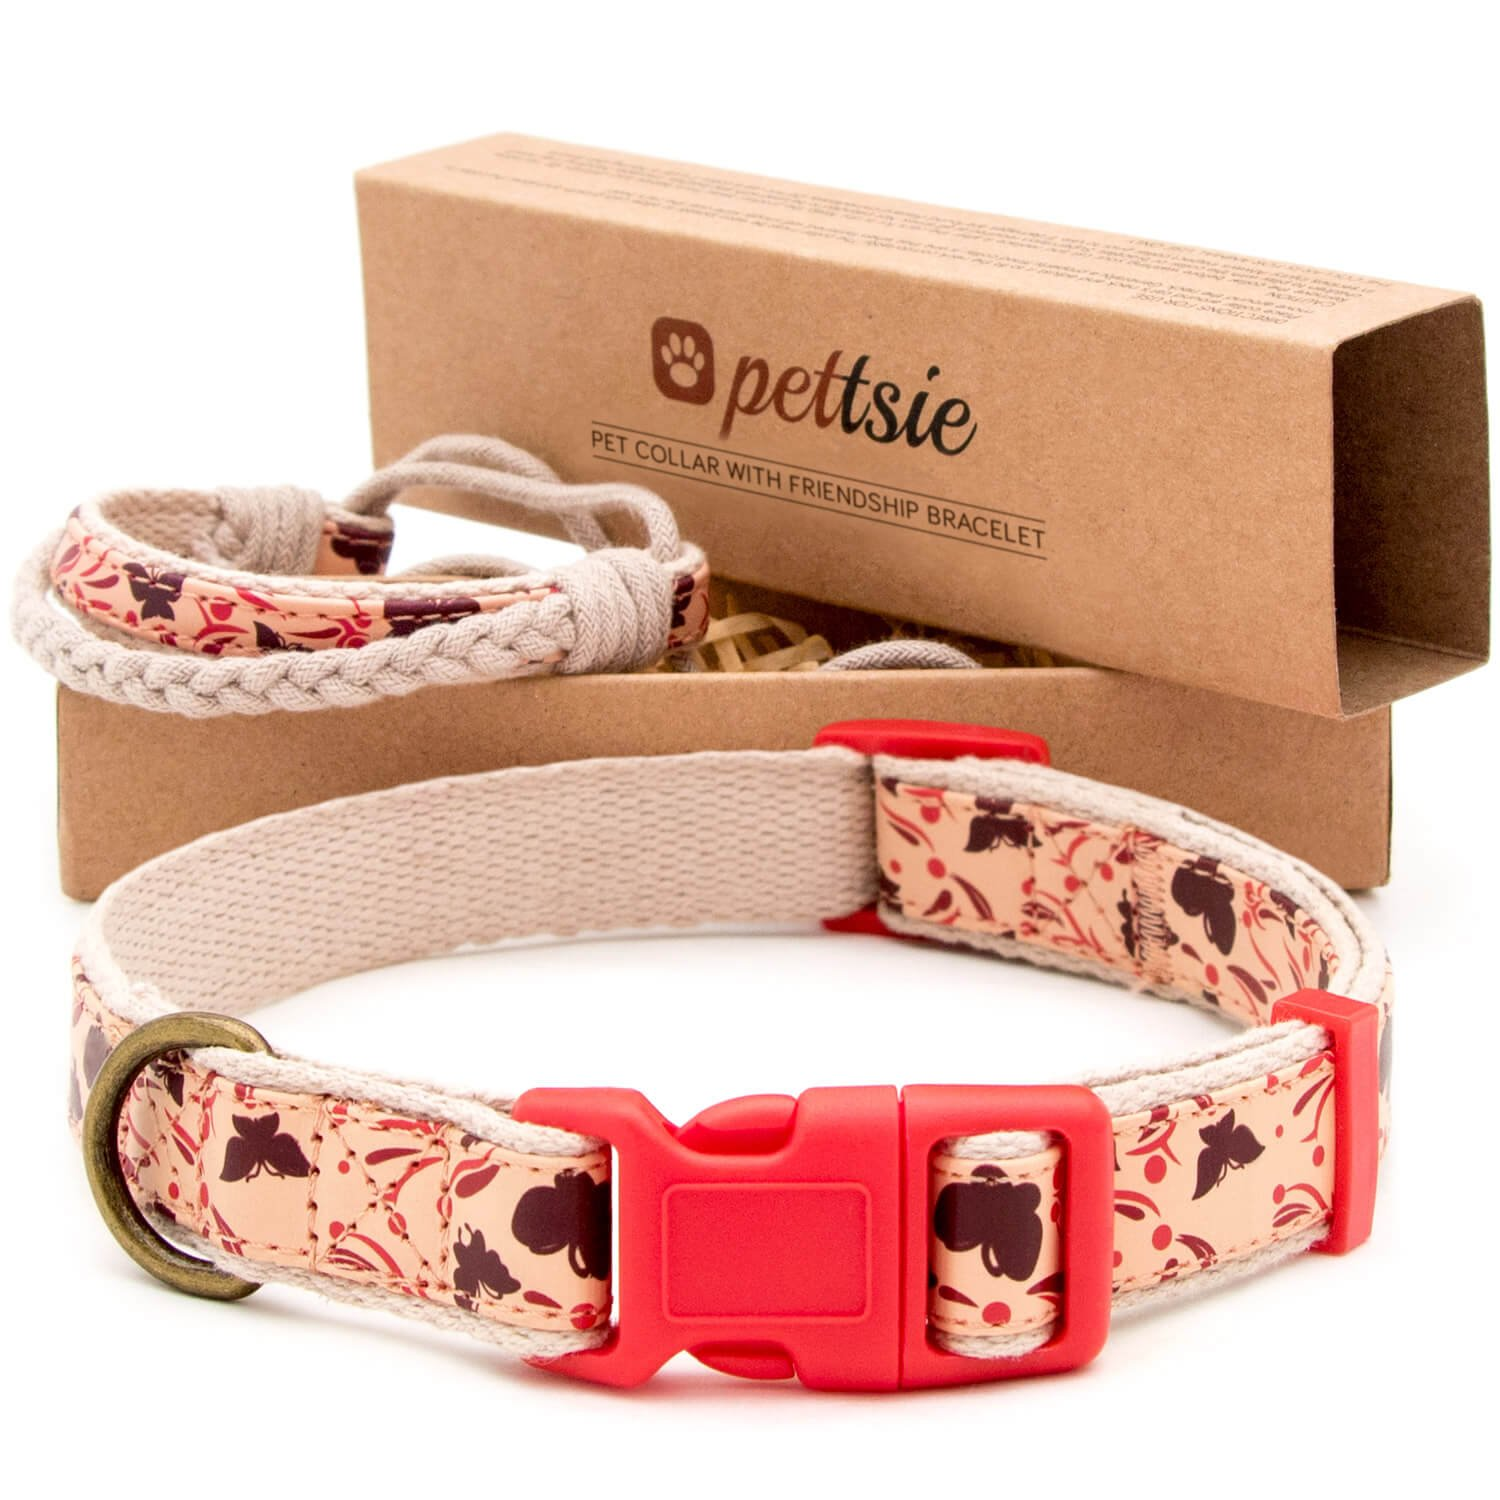 Pettsie Matching Dog Collar and Owner Friendship Bracelet, Adjustable Size Small and Medium, Safe, Durable, Eco Friendly Hemp with Fancy Pattern, Comfortable, Strong